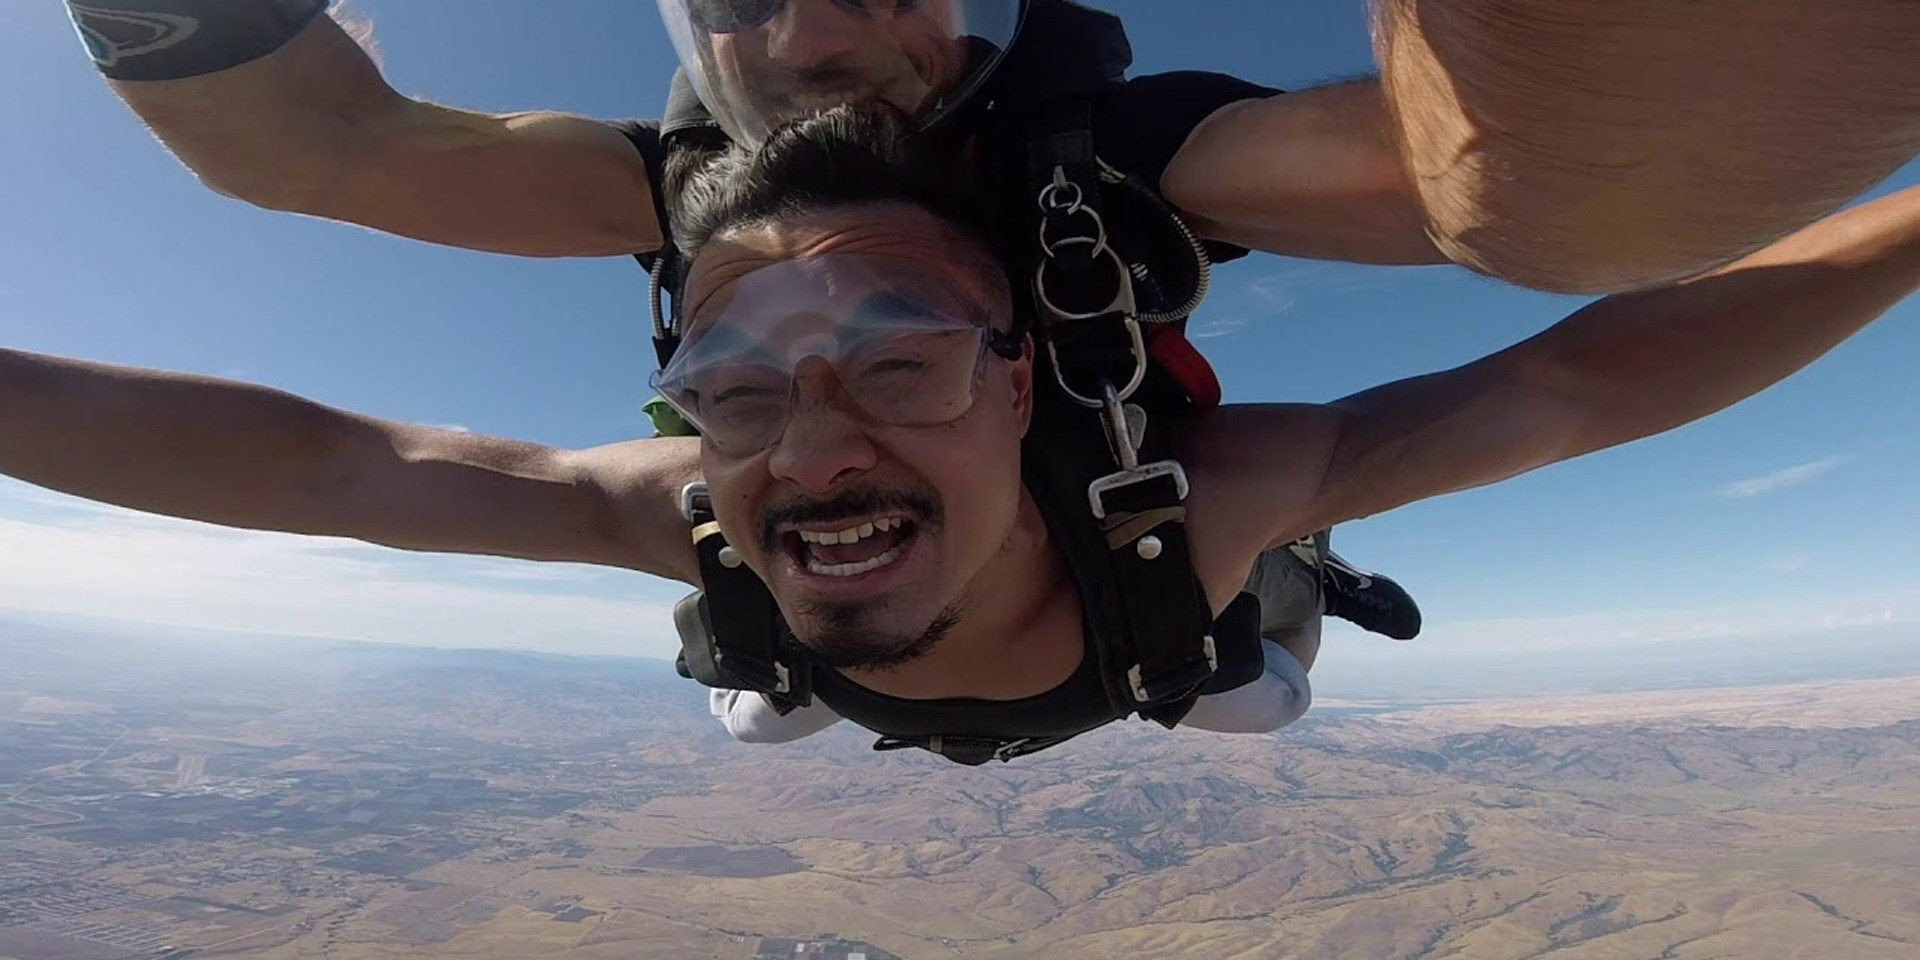 Phanat's June 2019 First Tandem Skydive in Hollister